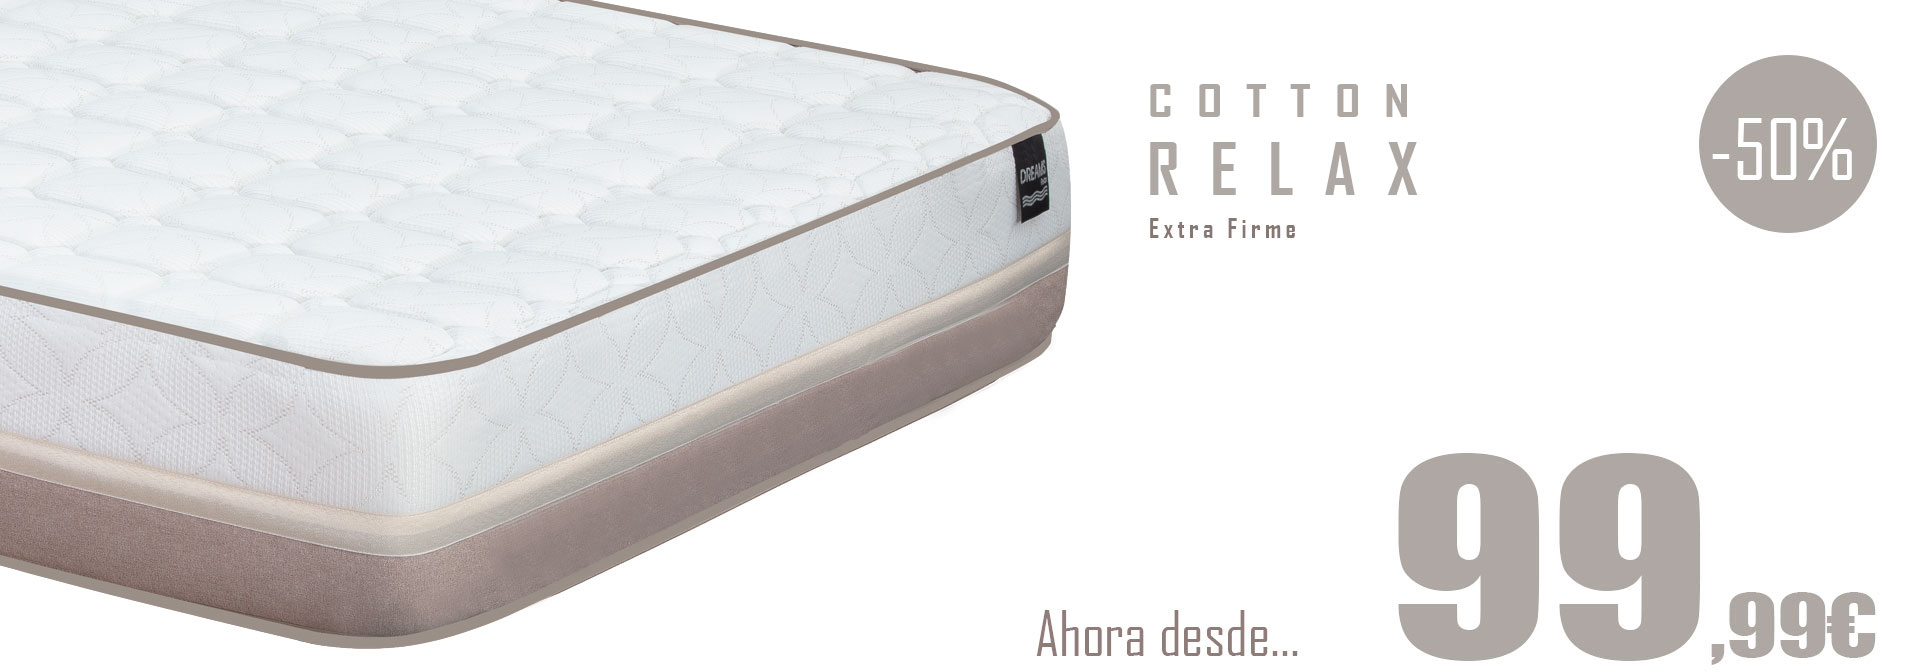 Cotton relax